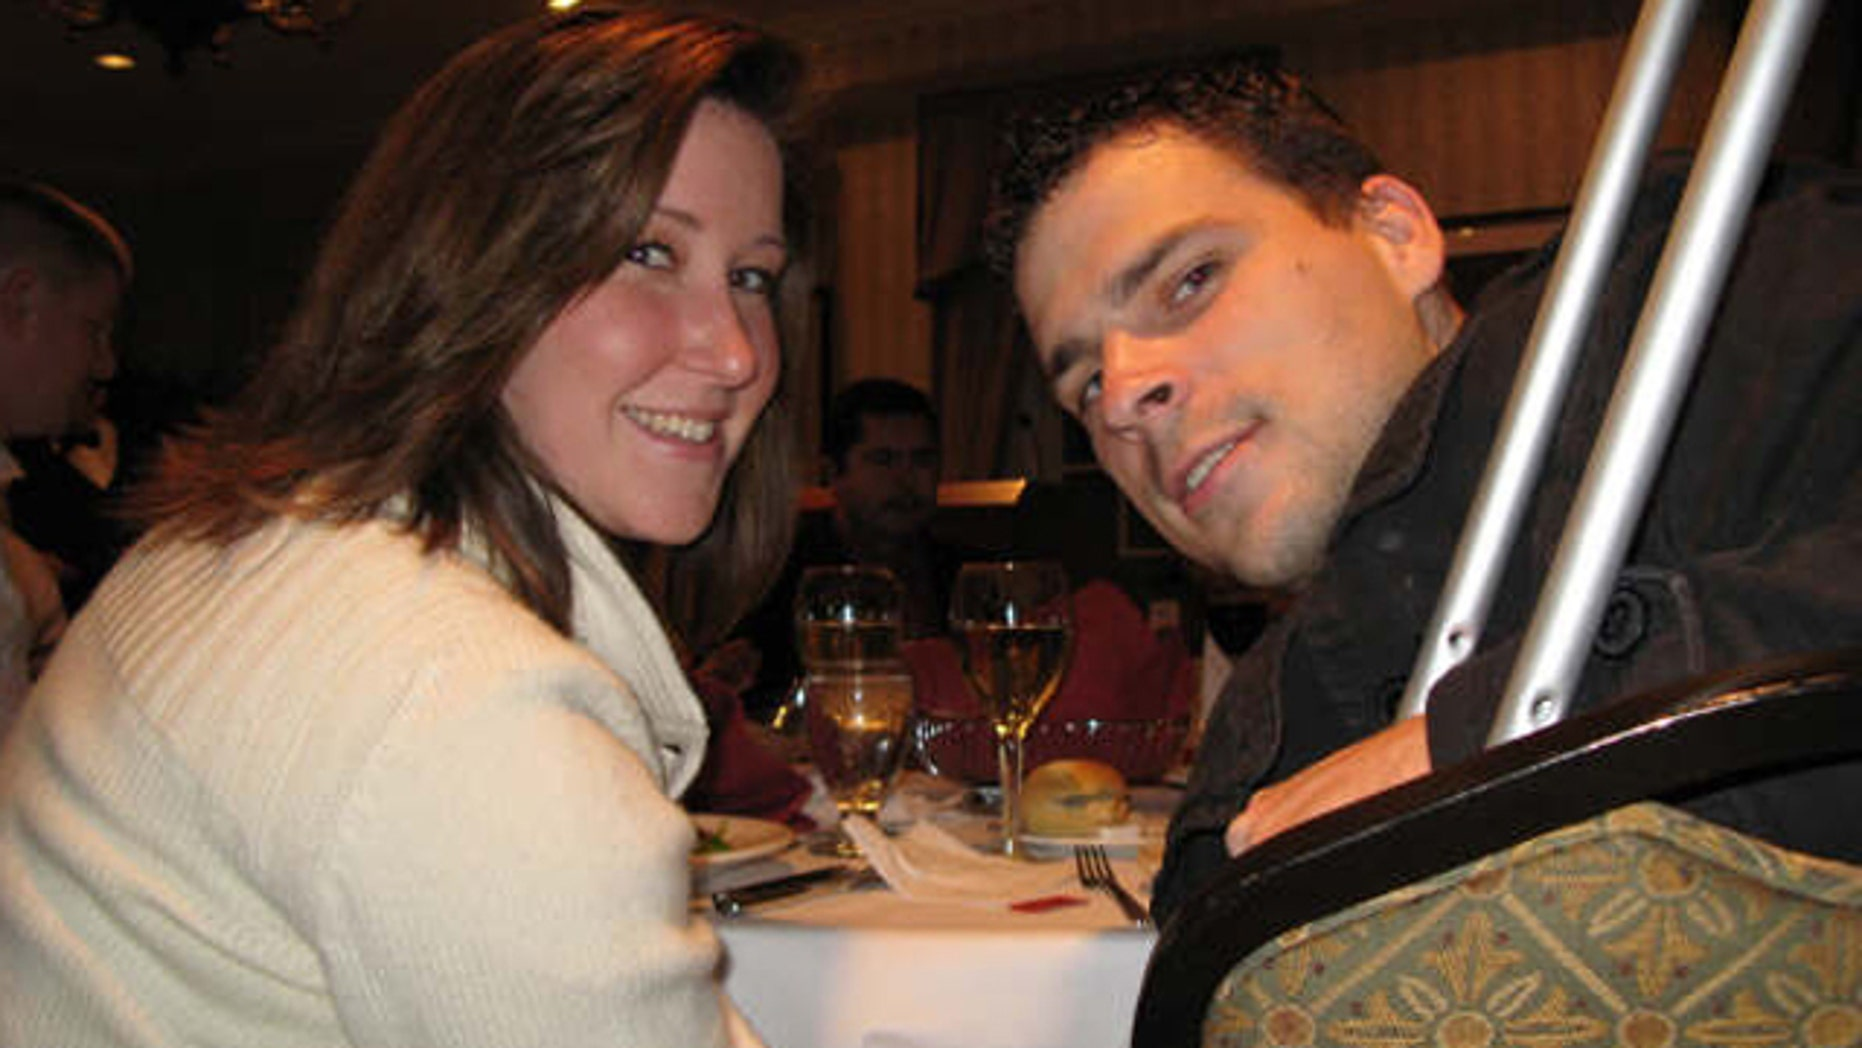 Nov. 14, 2008: Army Staff Sgt. Anthony Maschek, poses with his wife, Angela, at a wounded warrior dinner held at the Capitol Hill Club.